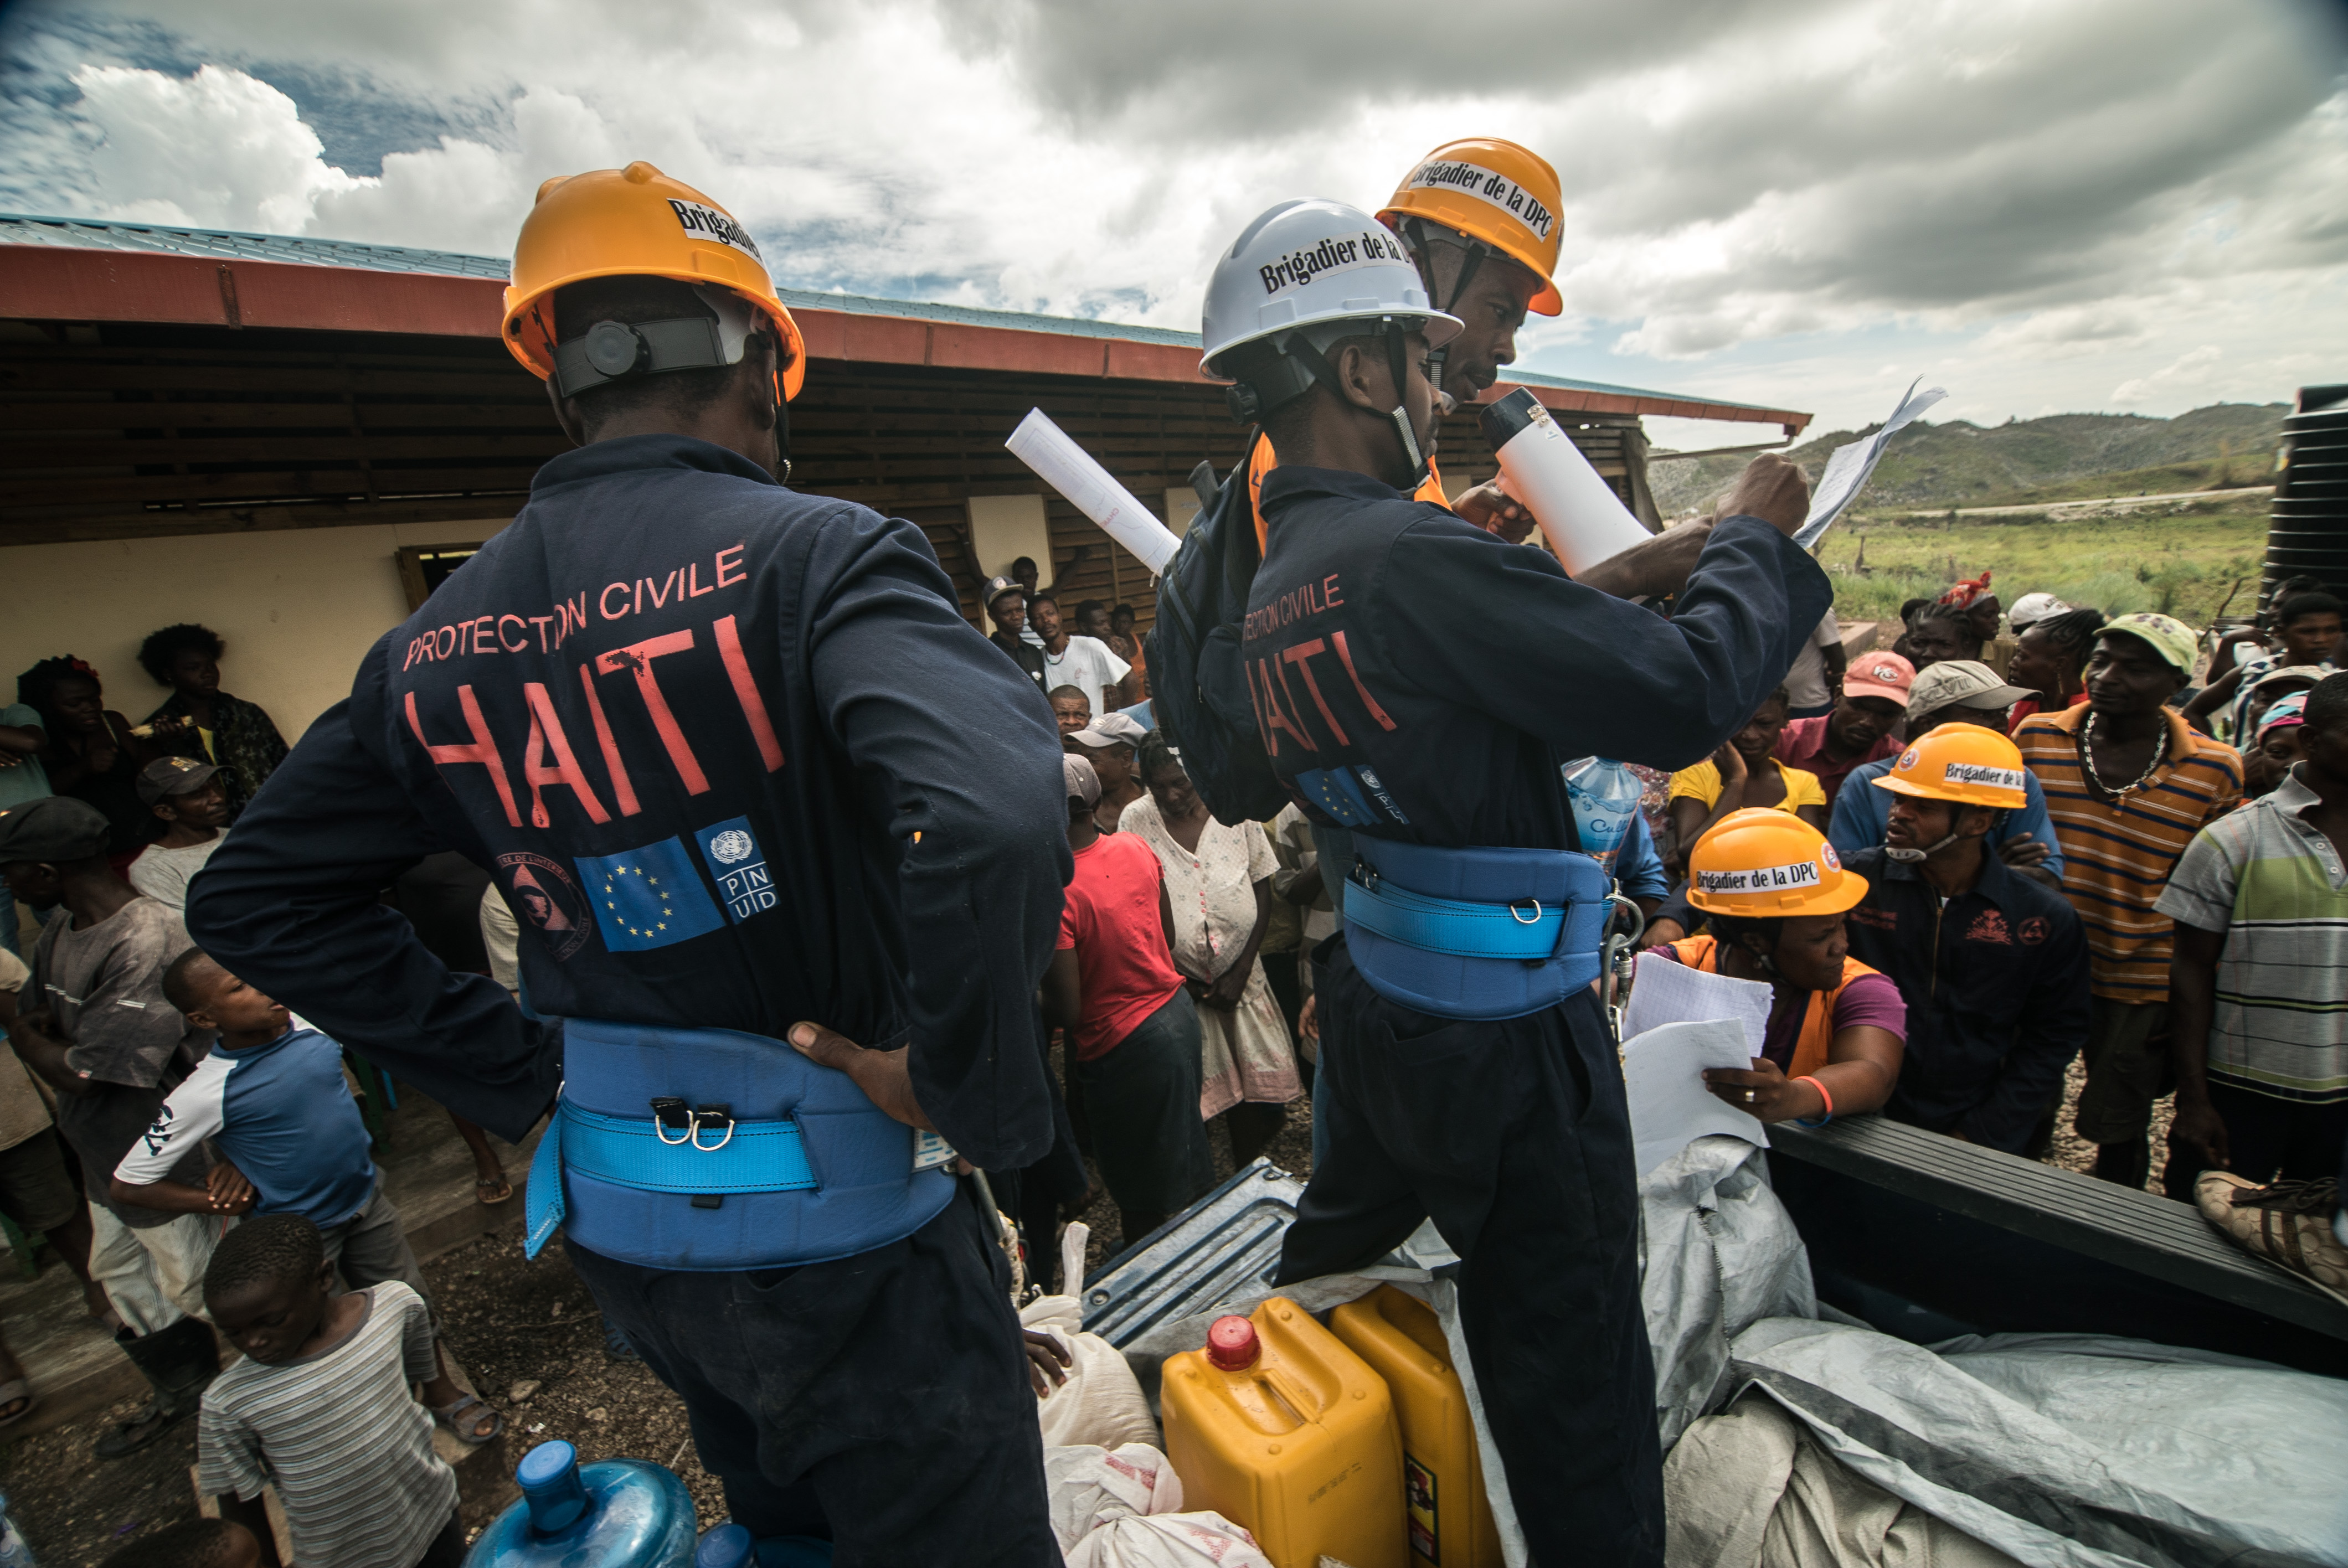 haiti civil protection volunteers put others first by united